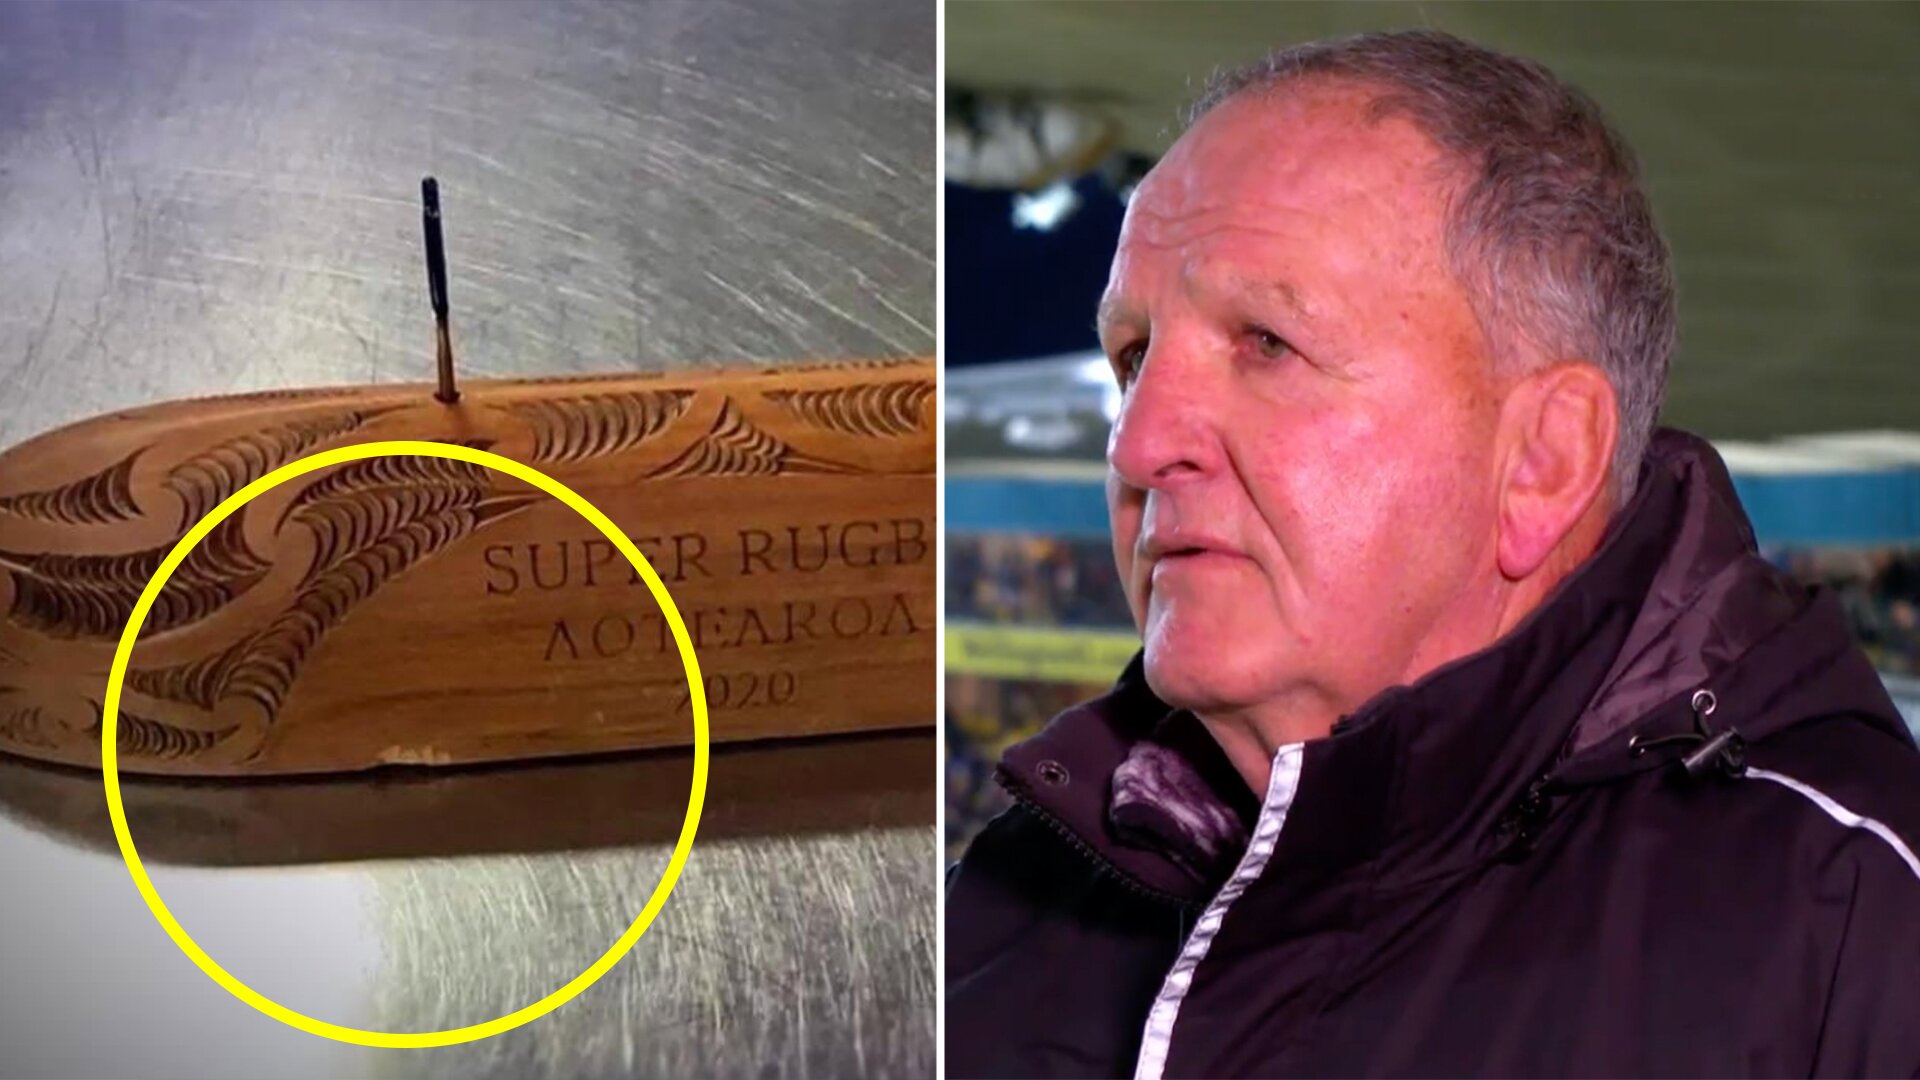 Terrible sadness for talented master carver as Crusaders trash unique Super Rugby trophy